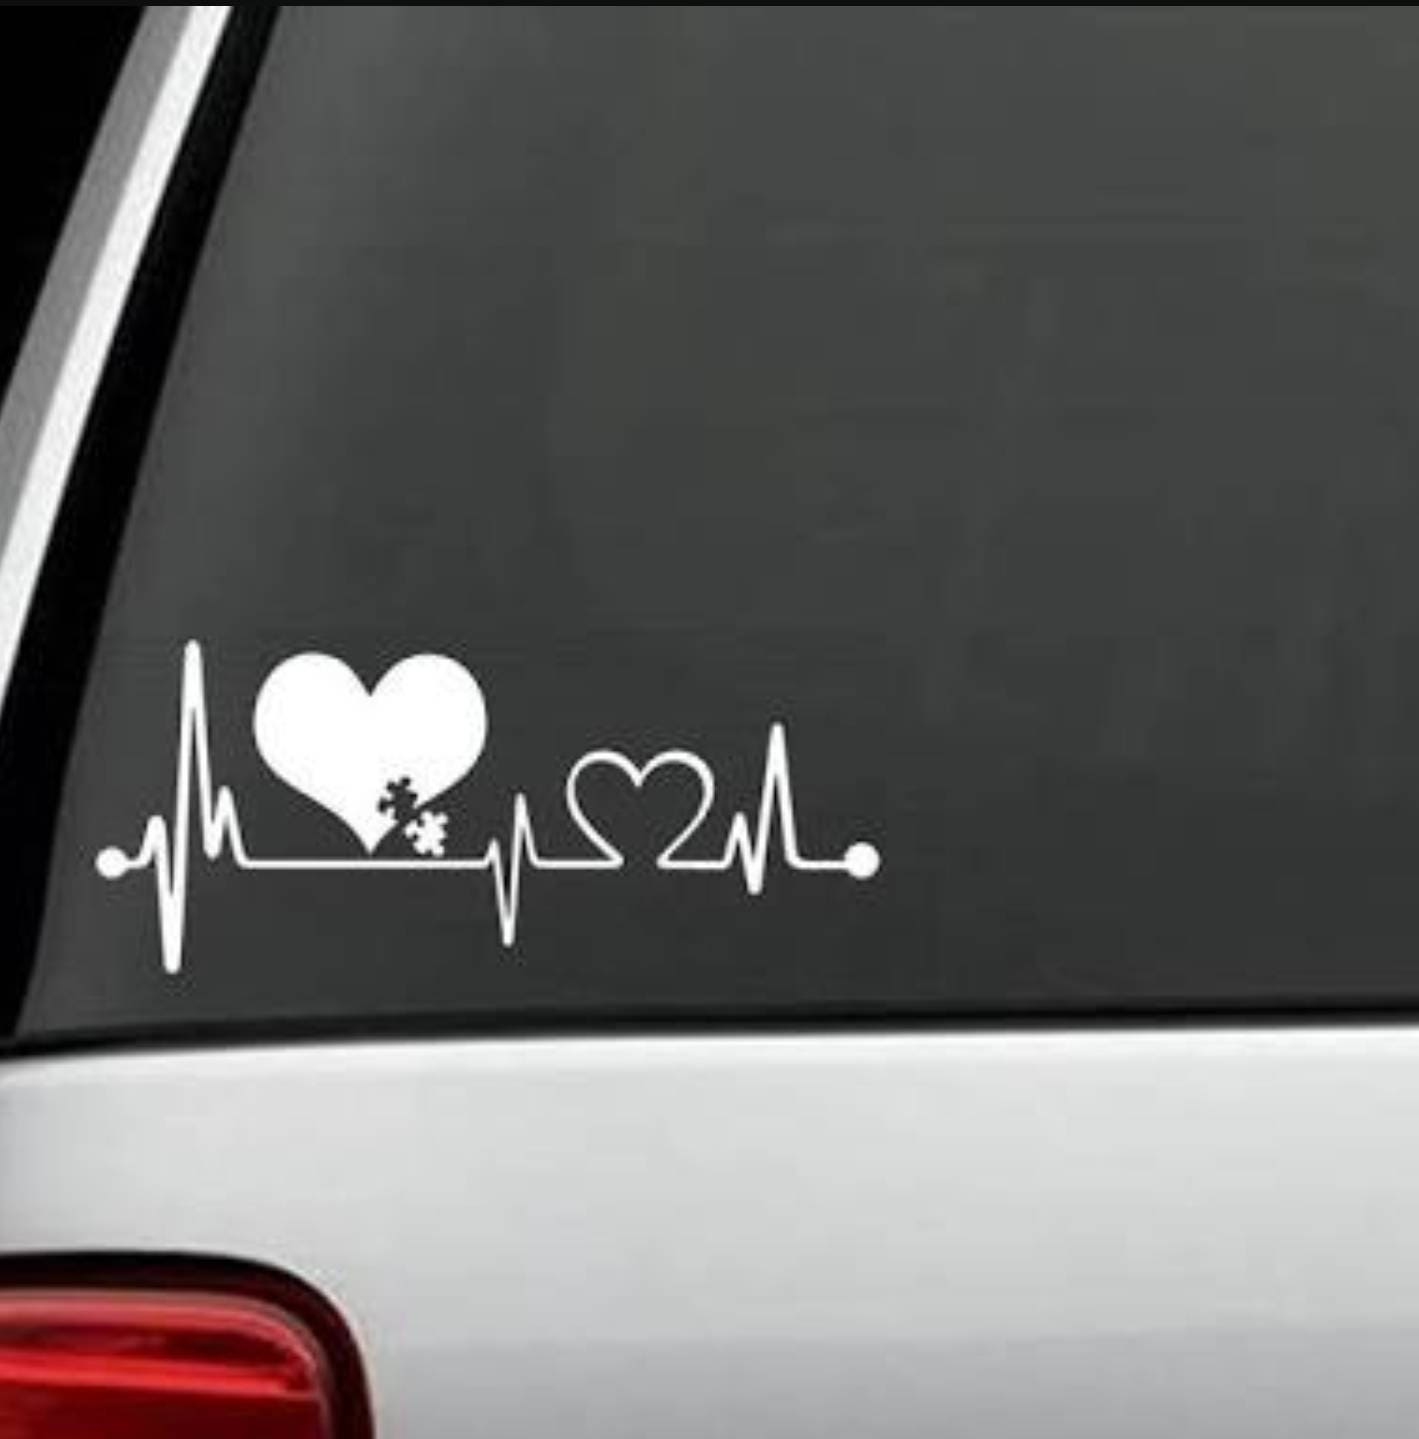 I LOVE SOMEONE WITH AUTISM #8 Vinyl Decal Car Truck Window Office Wall Laptop